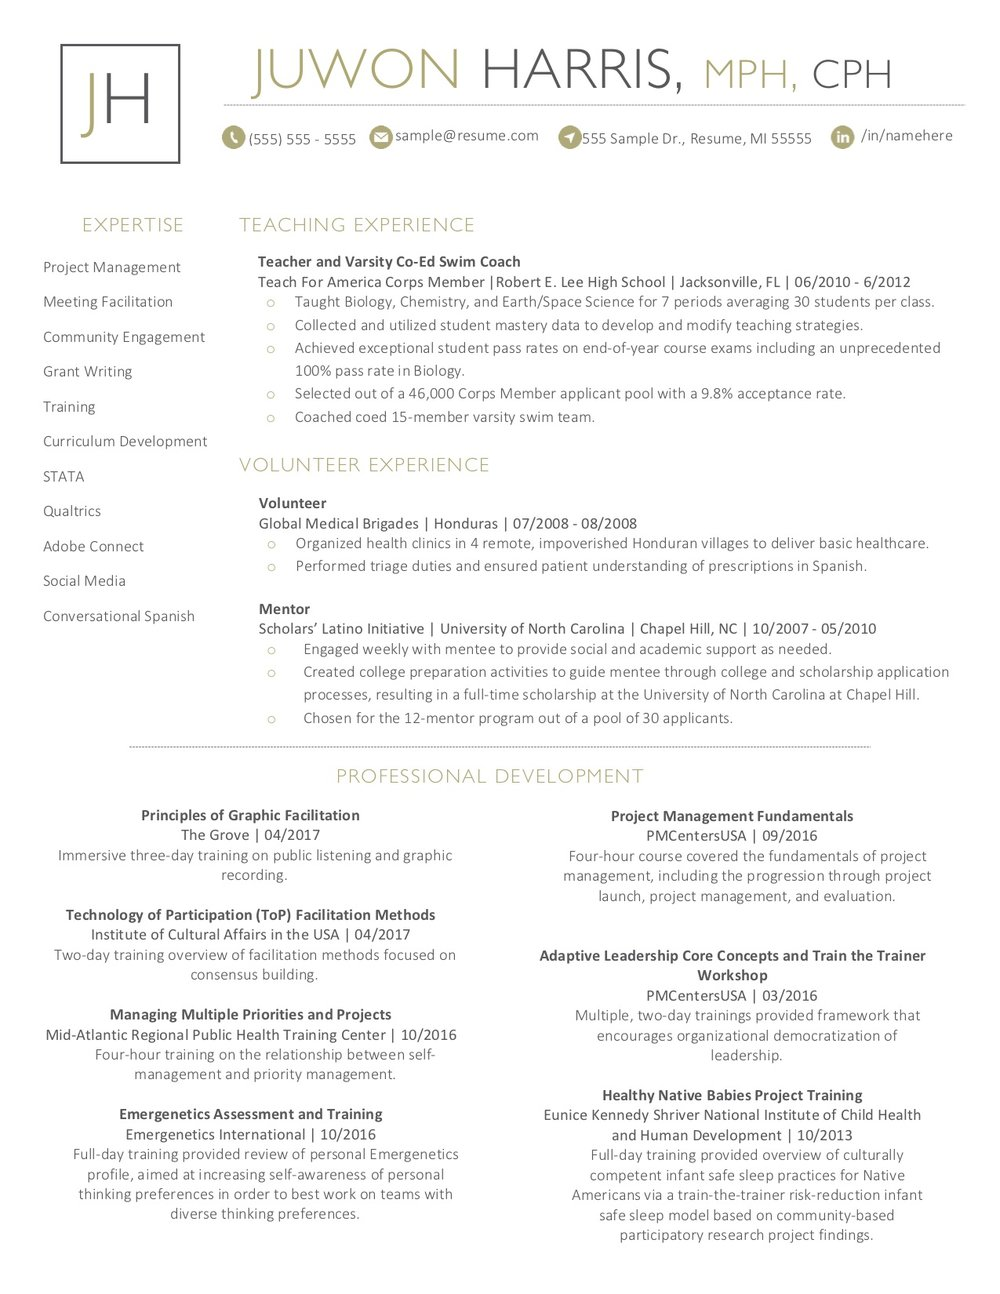 Client Resume #23 pg. 2. Click to enlarge.